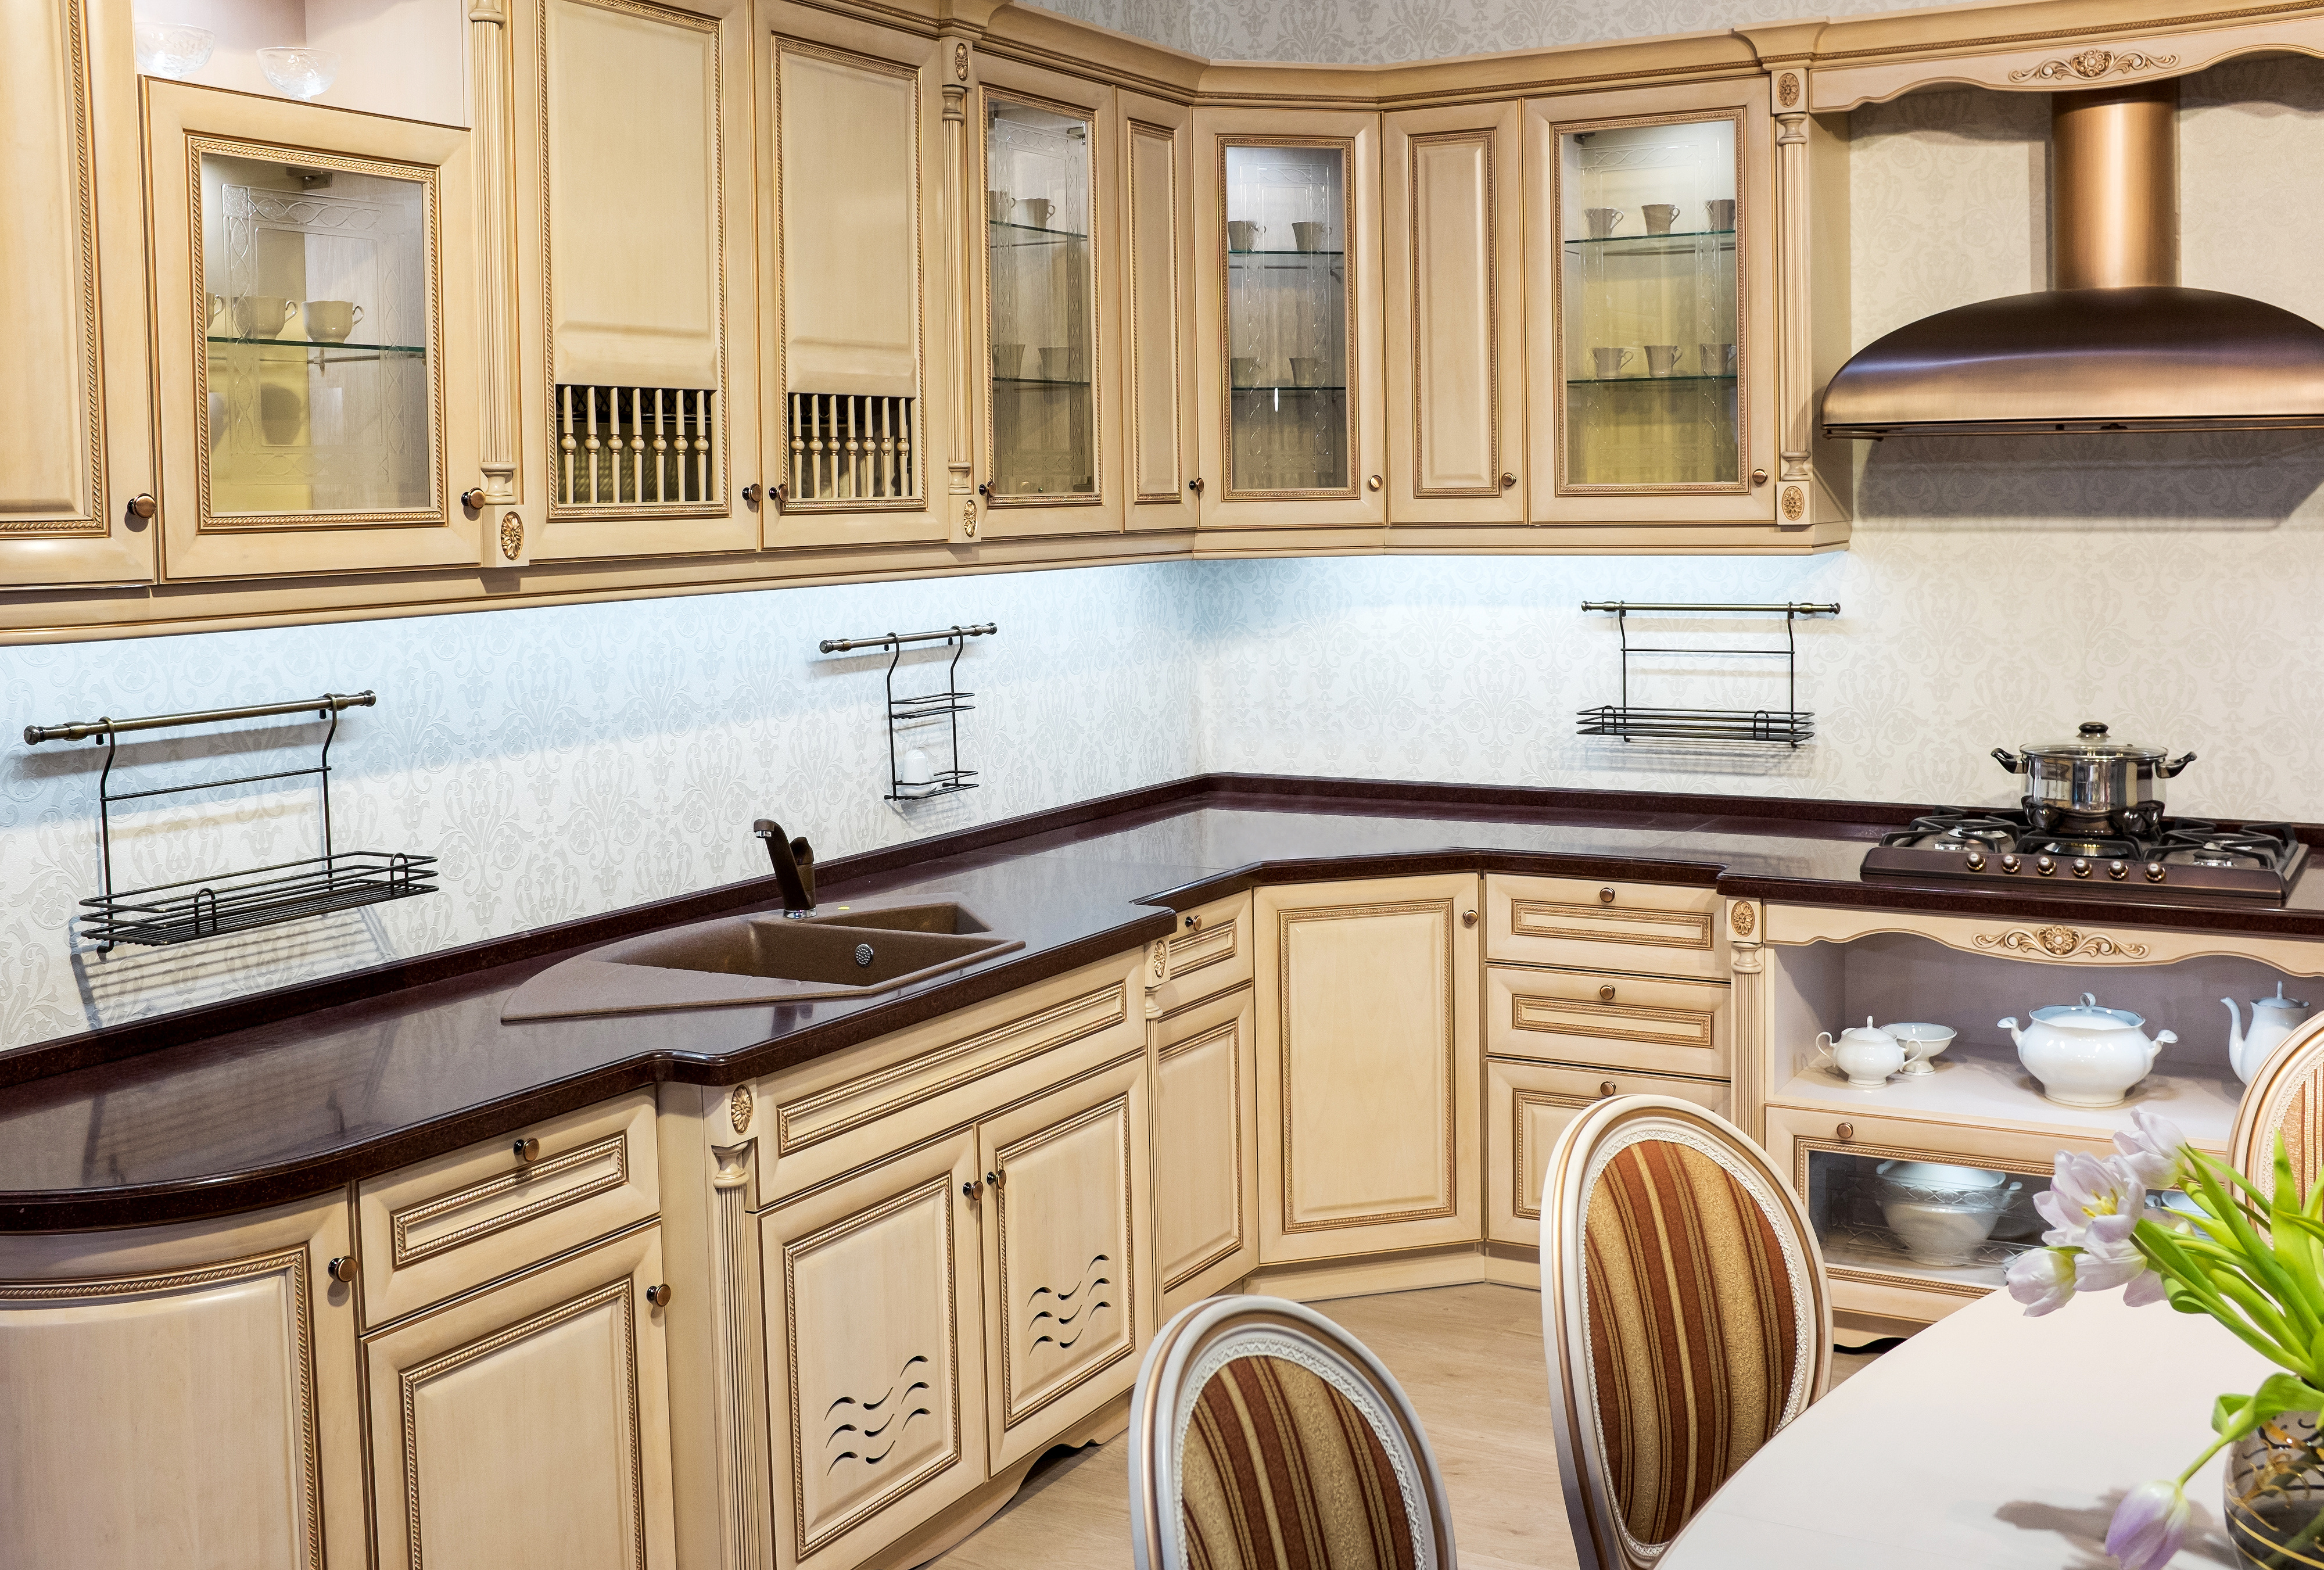 Kitchen Countertop Design Options